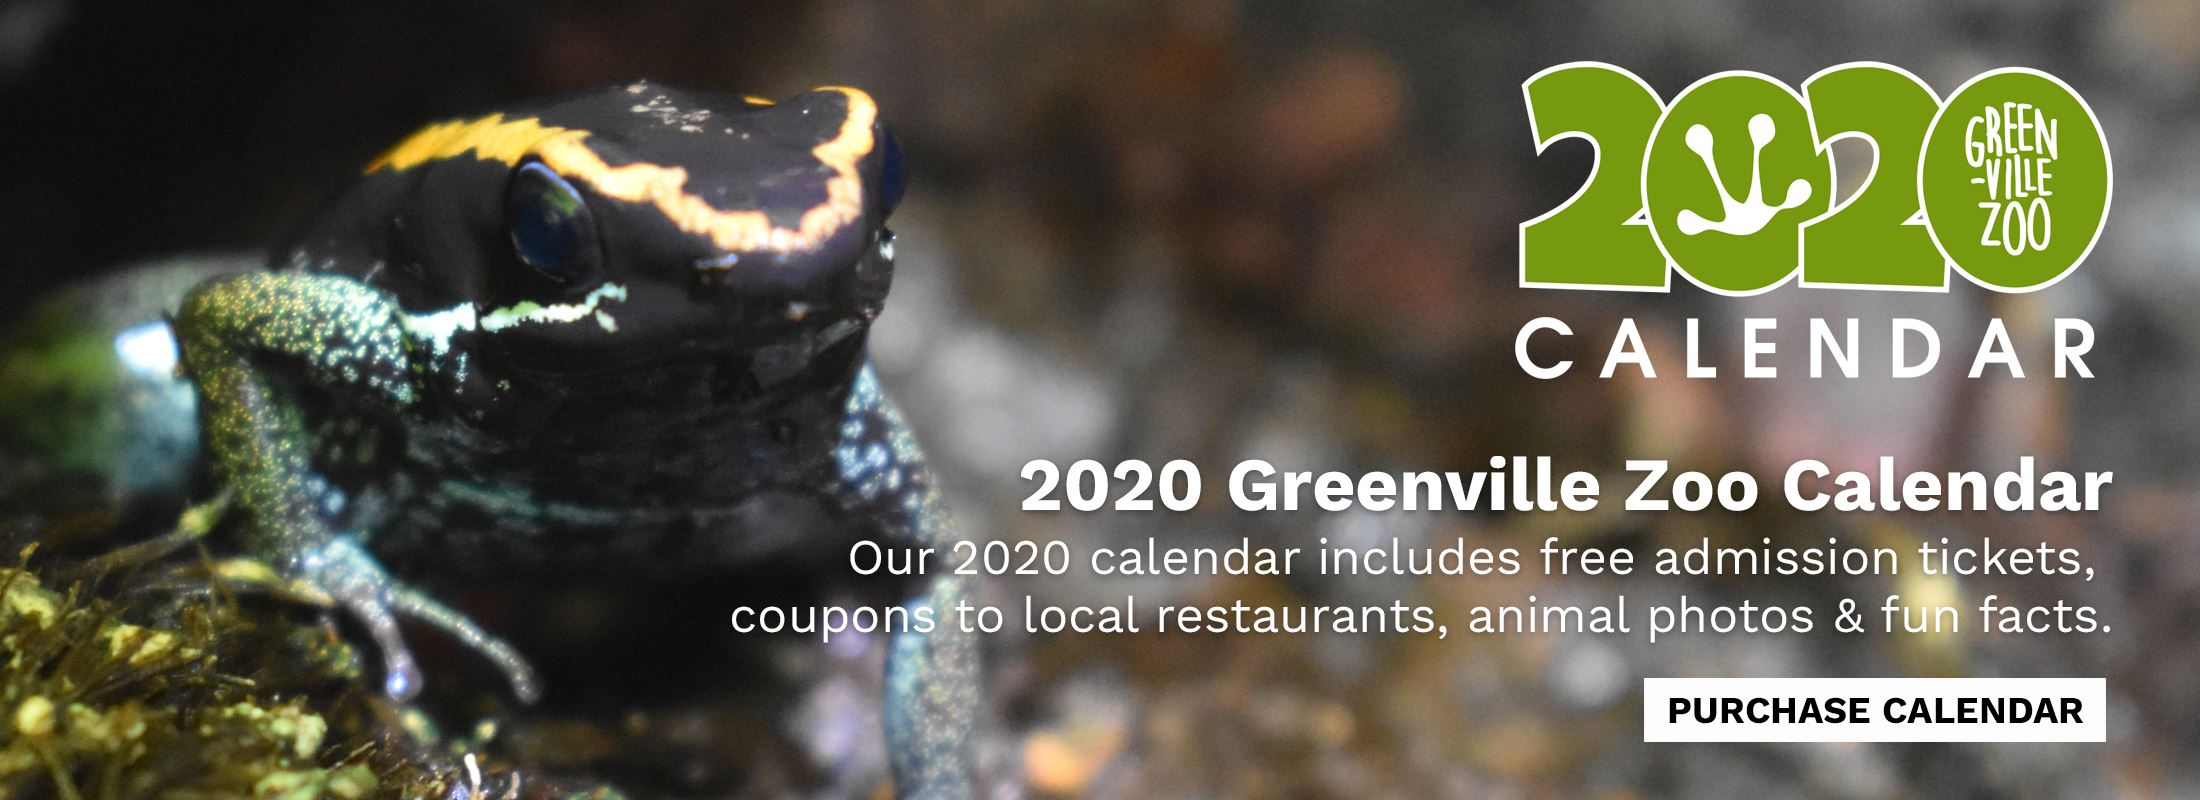 Purchase a 2020 Greenville Zoo Calendar